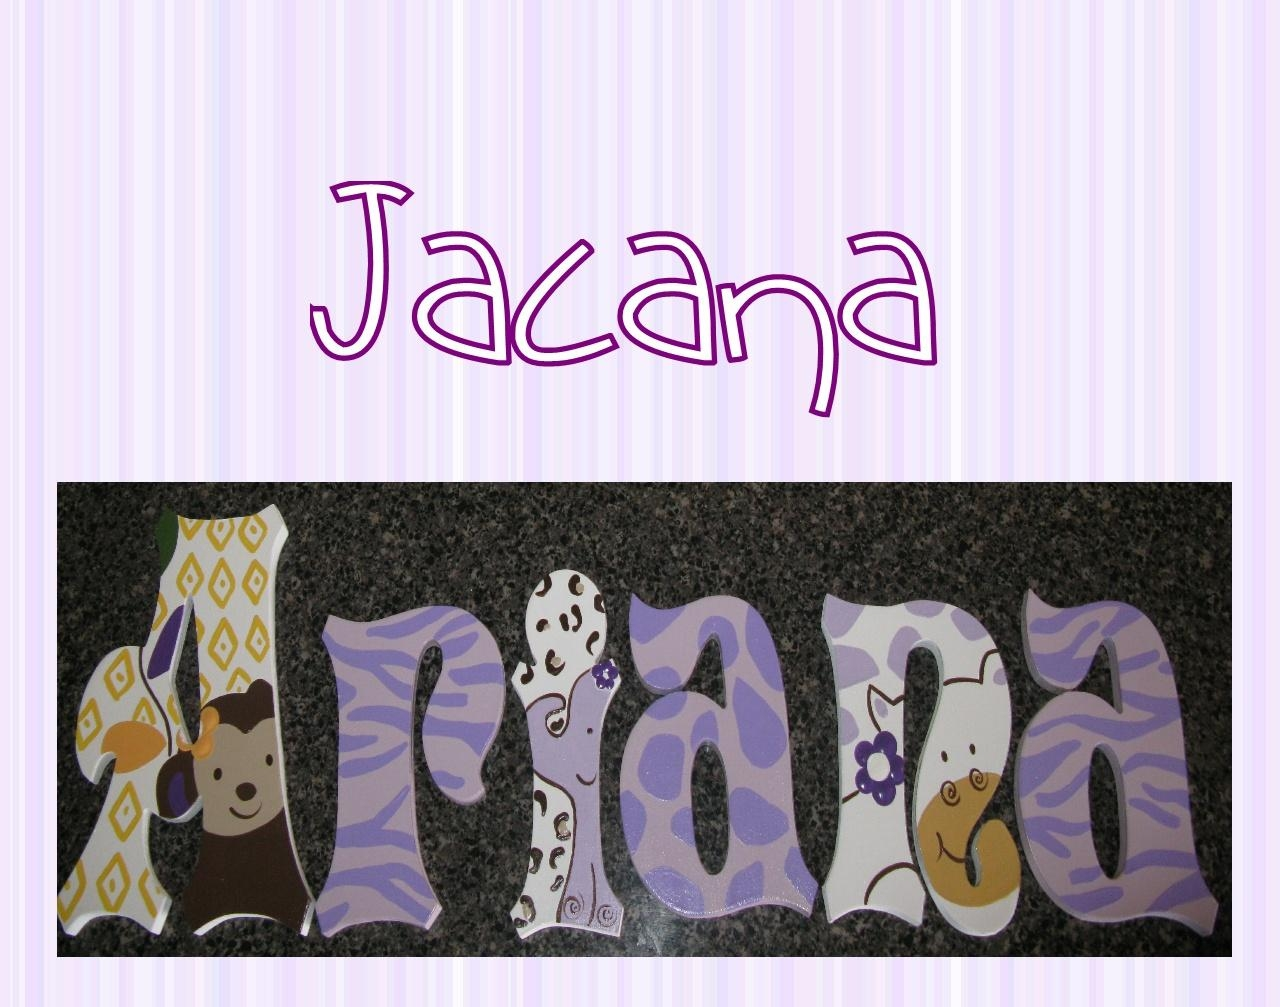 The Funky Letter Boutique: Top Girl Letter Designs Intended For Cocalo Jacana Wall Art (Image 7 of 10)